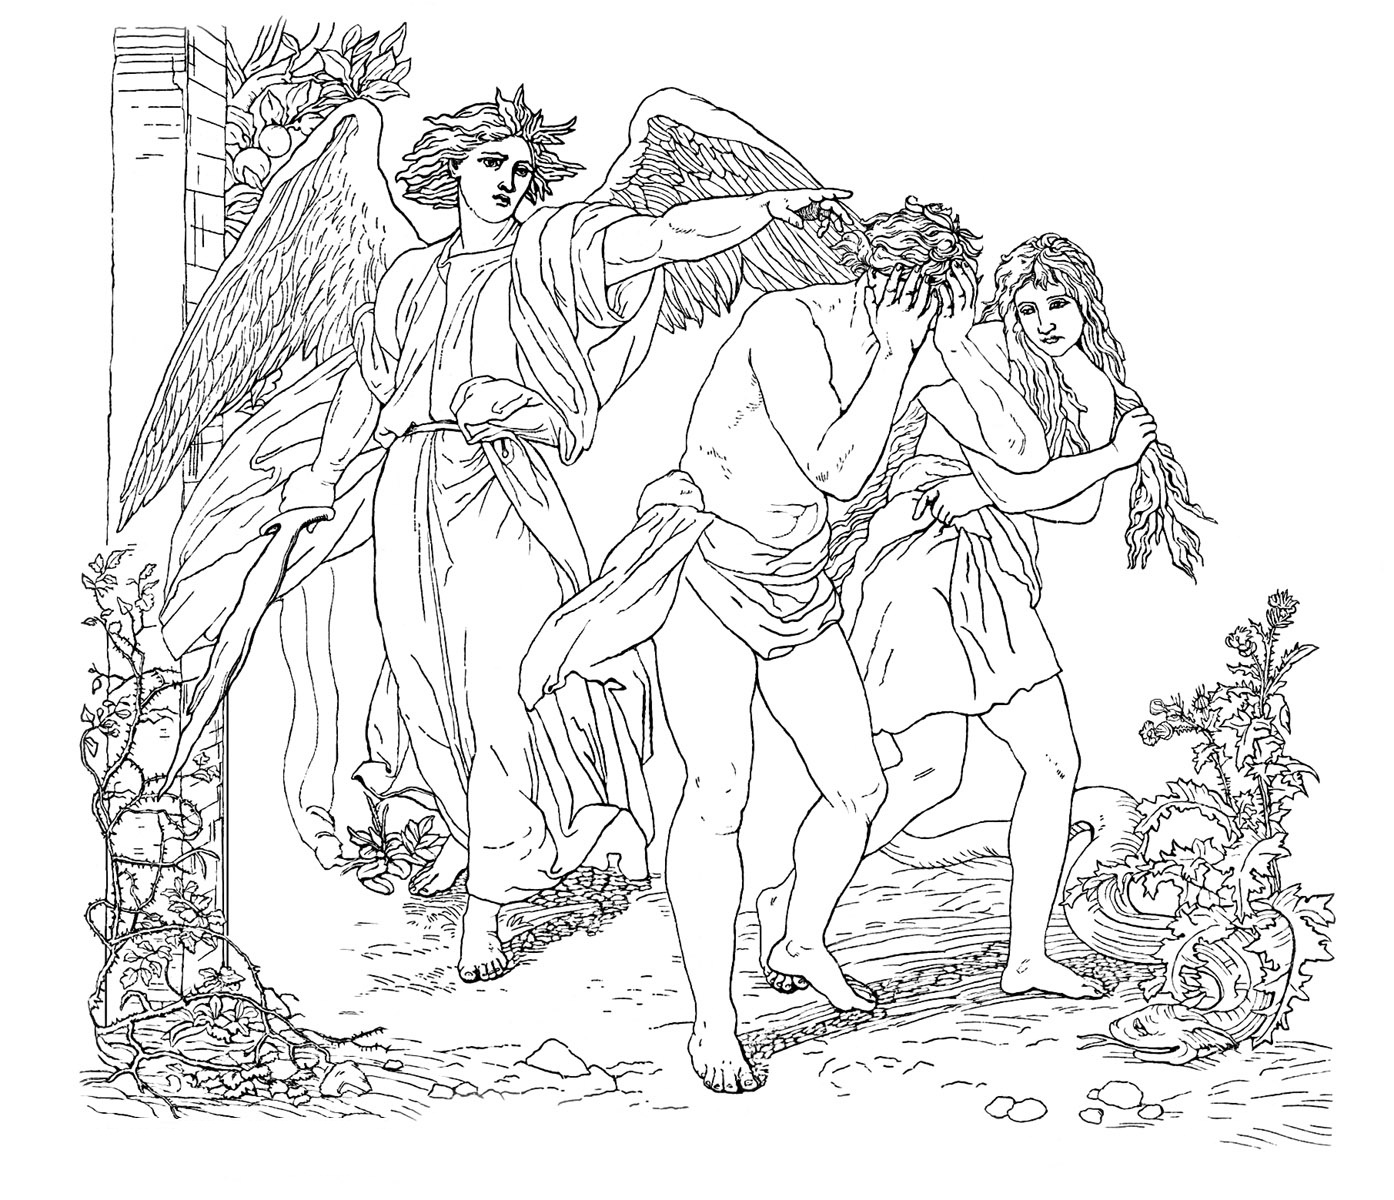 adam and eve coloring sheet adam and eve coloring pages printable sunday school eve adam sheet coloring and